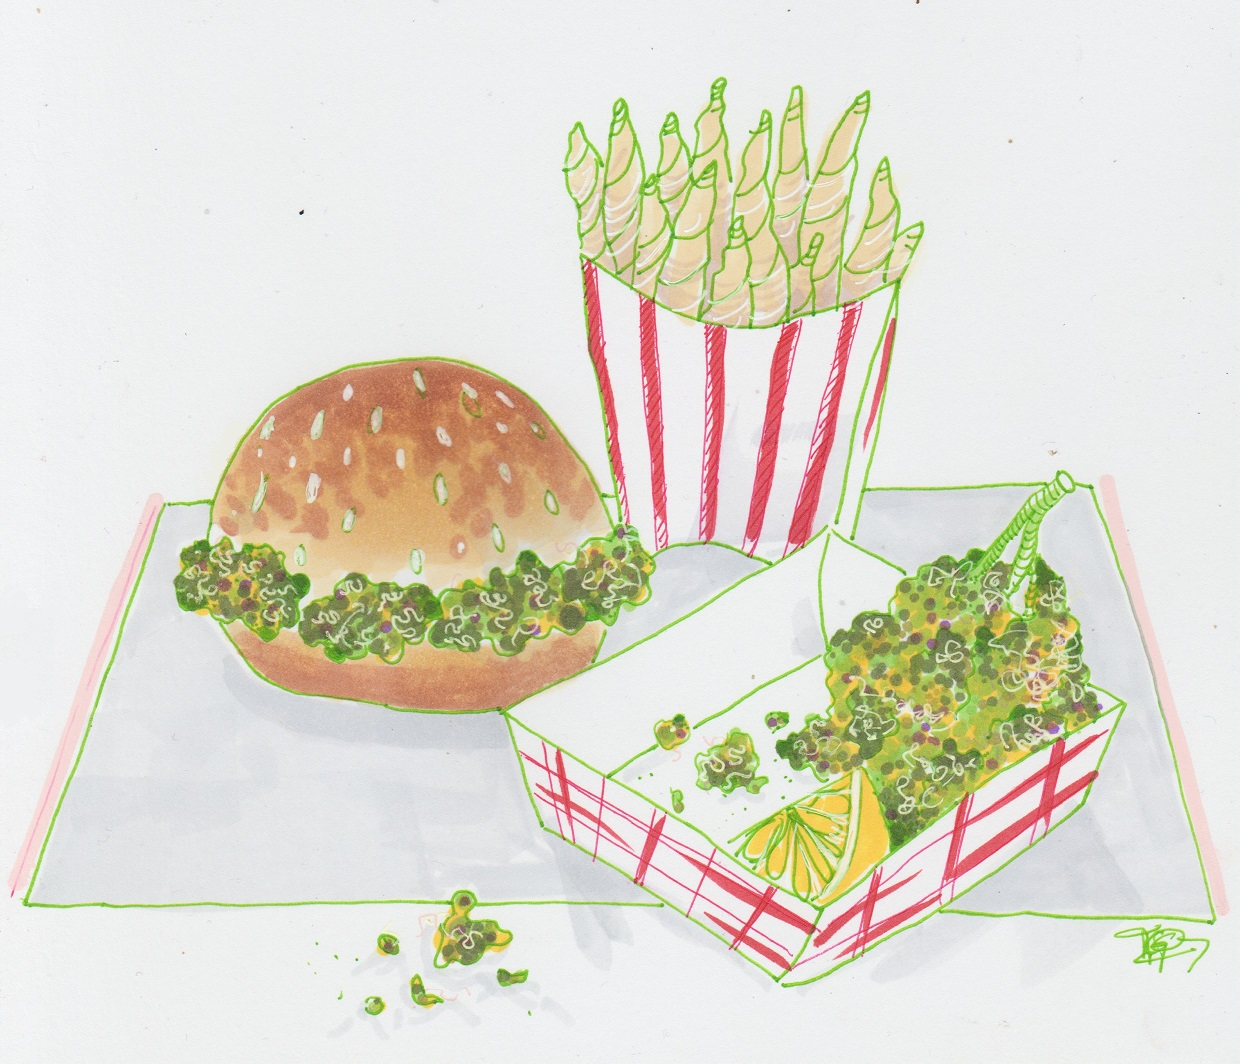 Illustration by Tiffani Gomez   [Image Description: A tray of fast food, burger, fries and chicken tenders, but the fries are pre-rolled joints, the burger filled with nugs of weed and cannabis tenders]